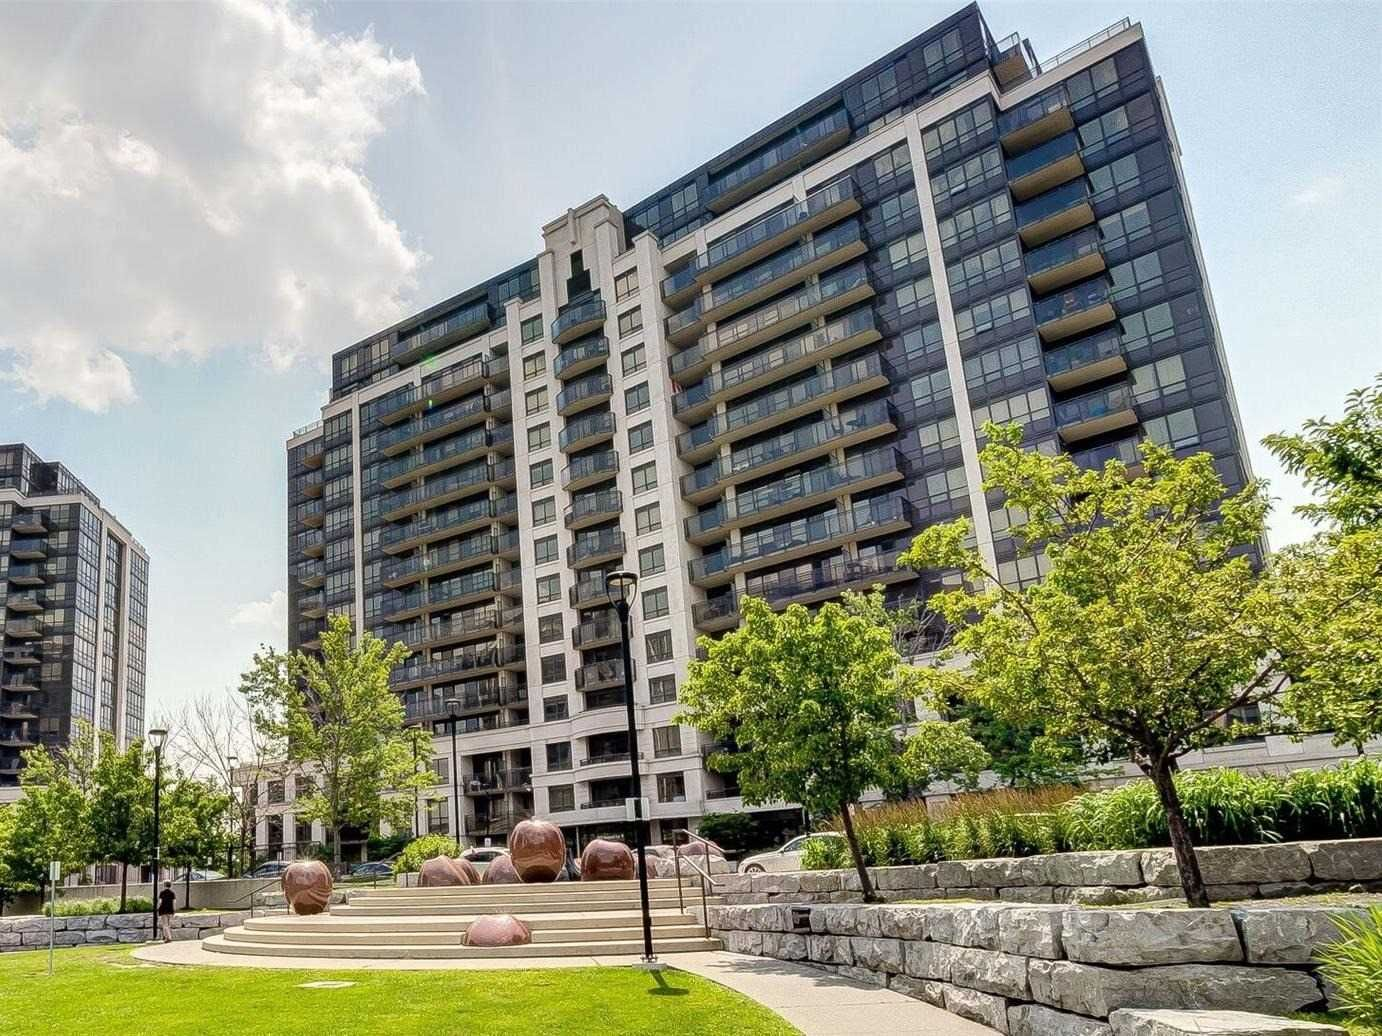 1070 Sheppard Ave W, unit 802 for sale in York University Heights - image #2